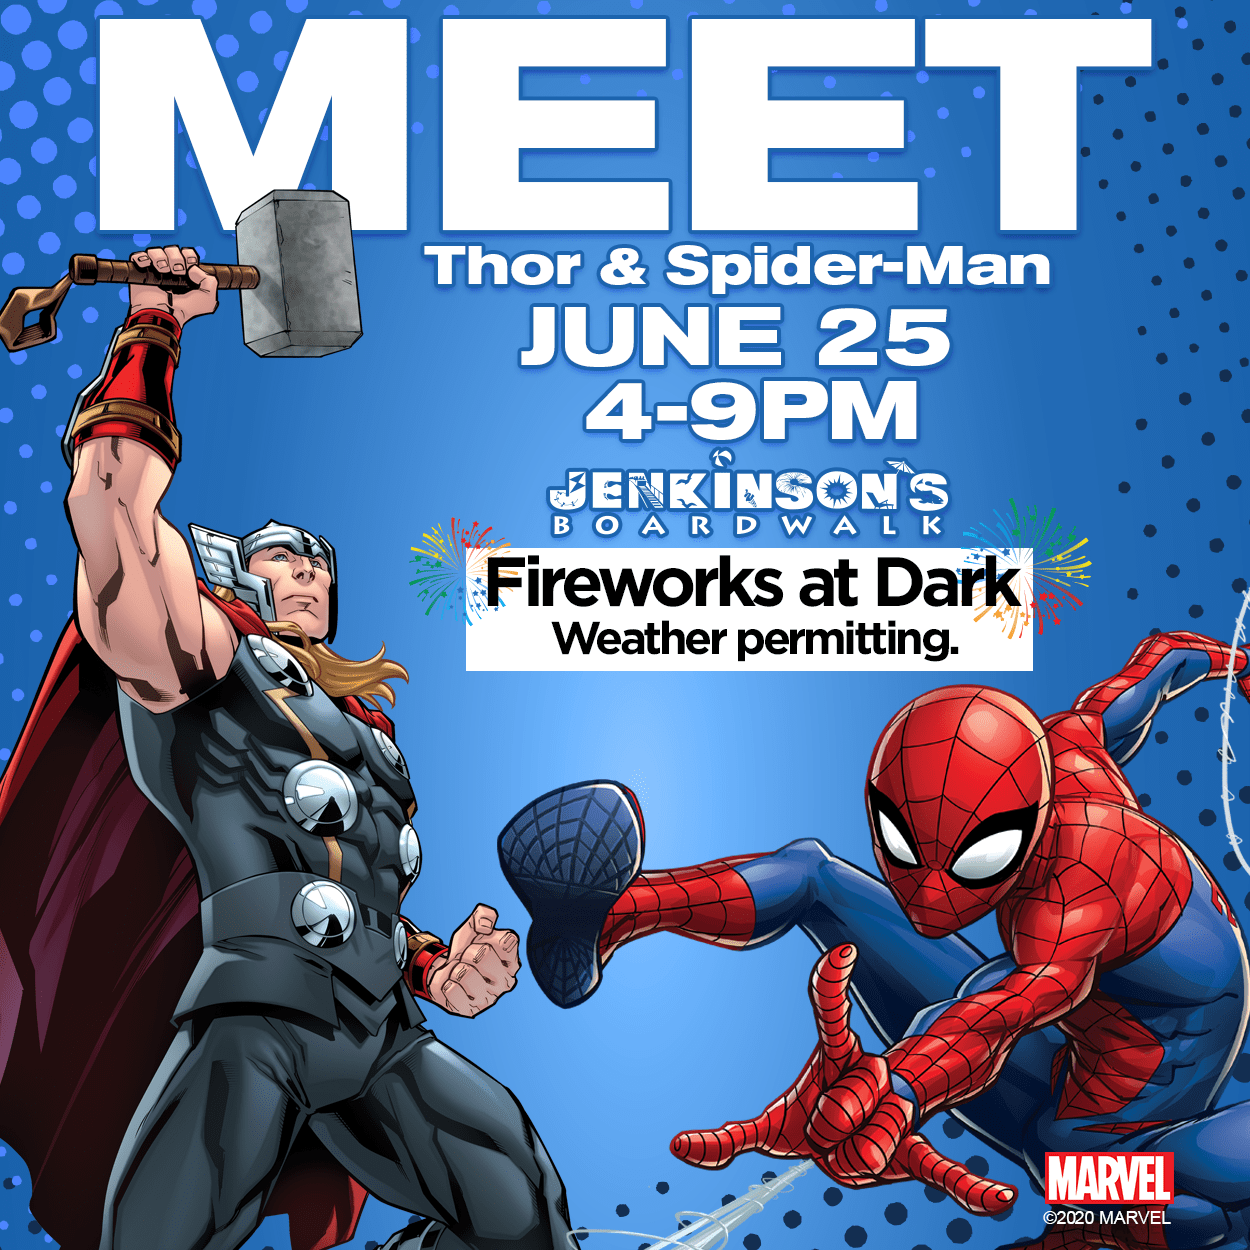 Jenkinson's Marvel Meet & Greet with Spider-man & Thor